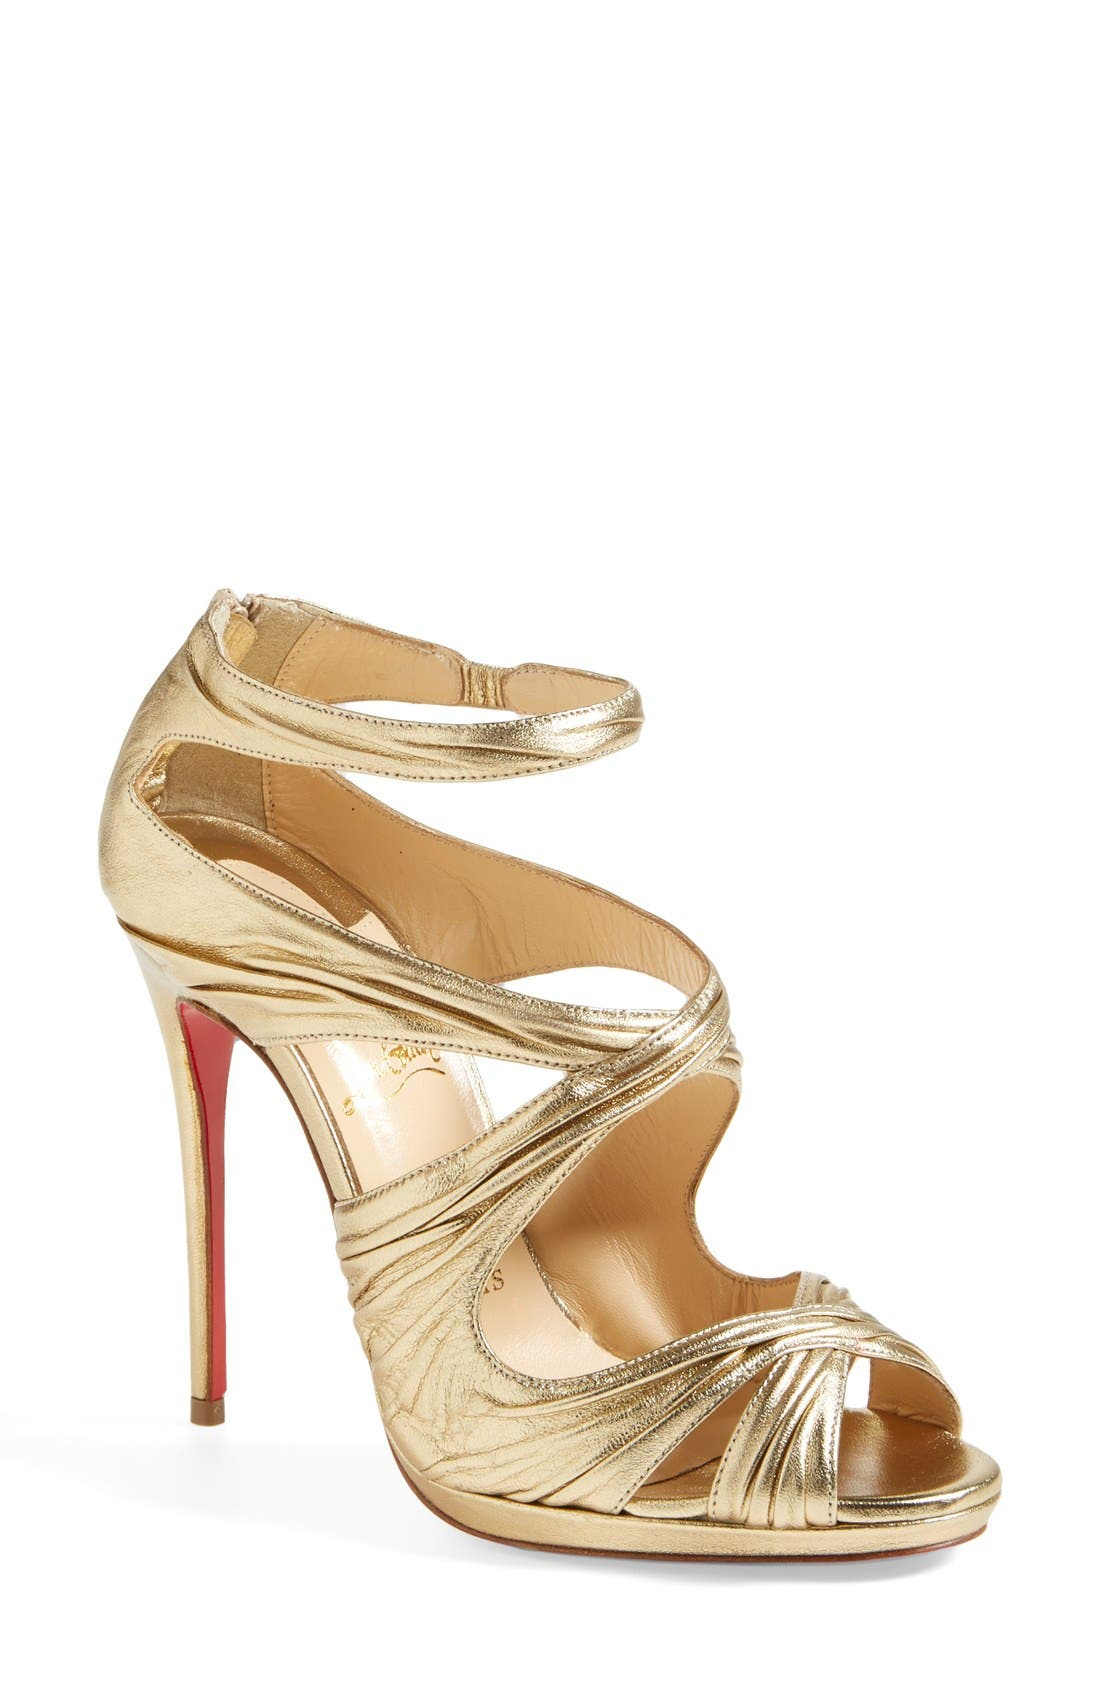 Main Image - Christian Louboutin 'Kashou' Metallic Nappa Leather Sandal